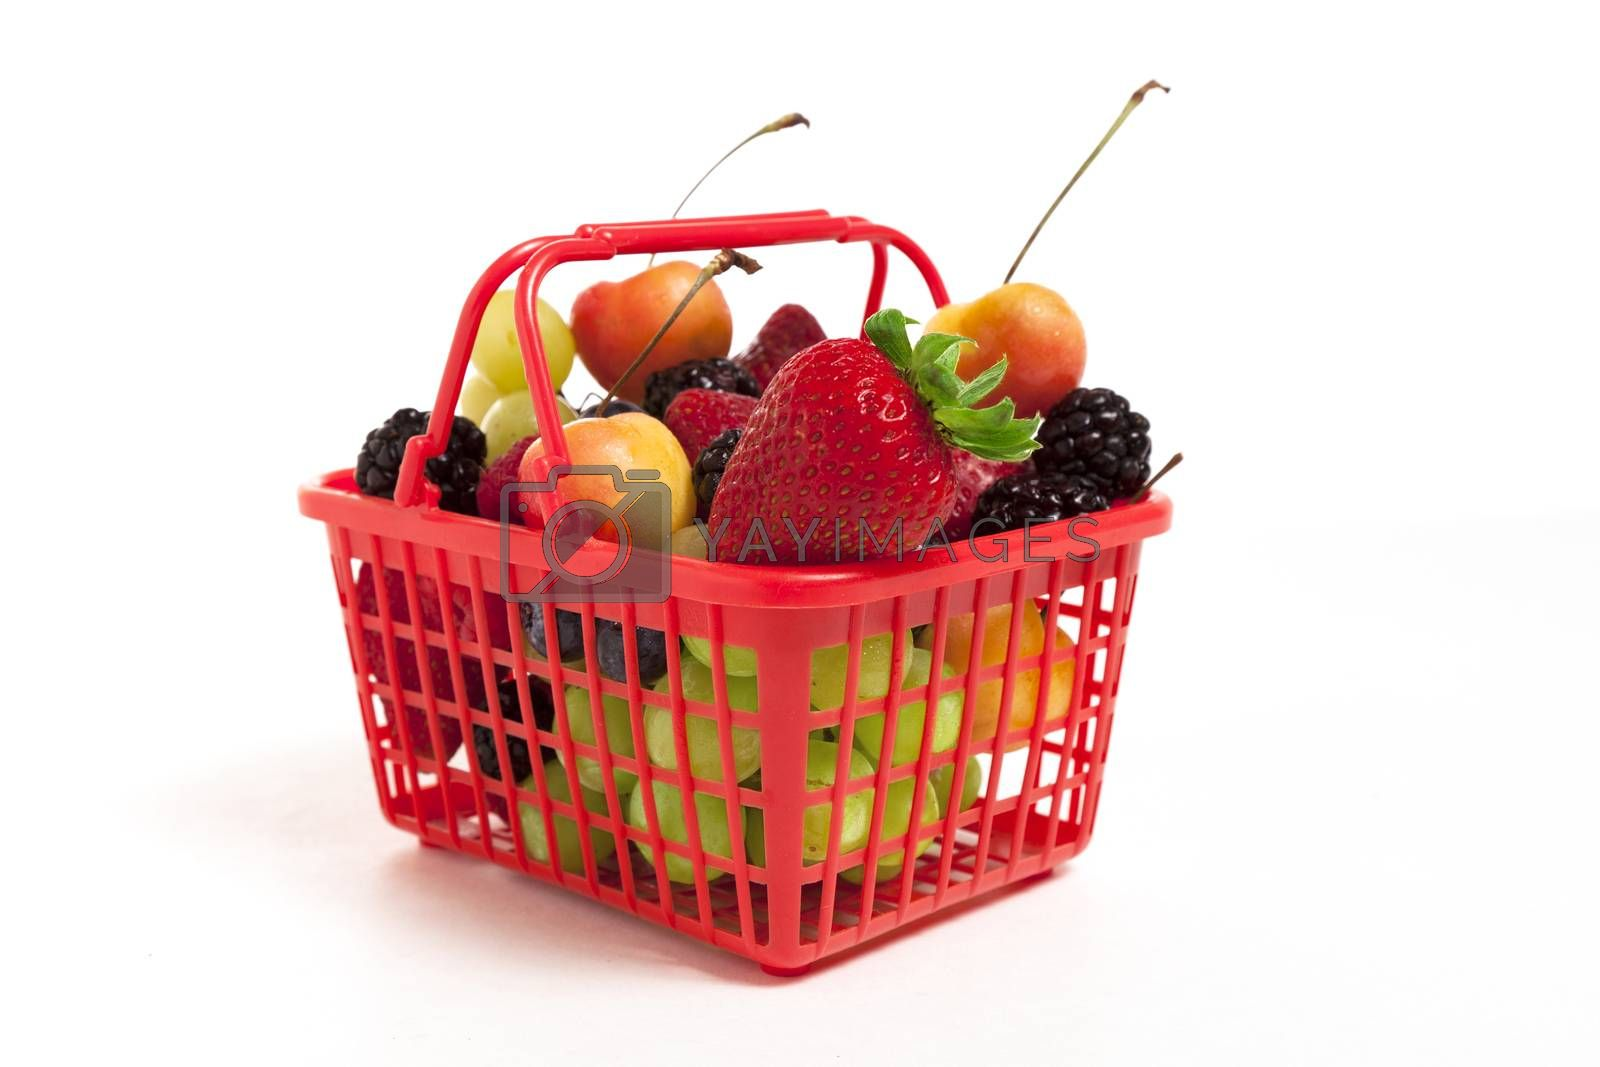 Royalty free image of Oversized Fruits and Berries by mothy20